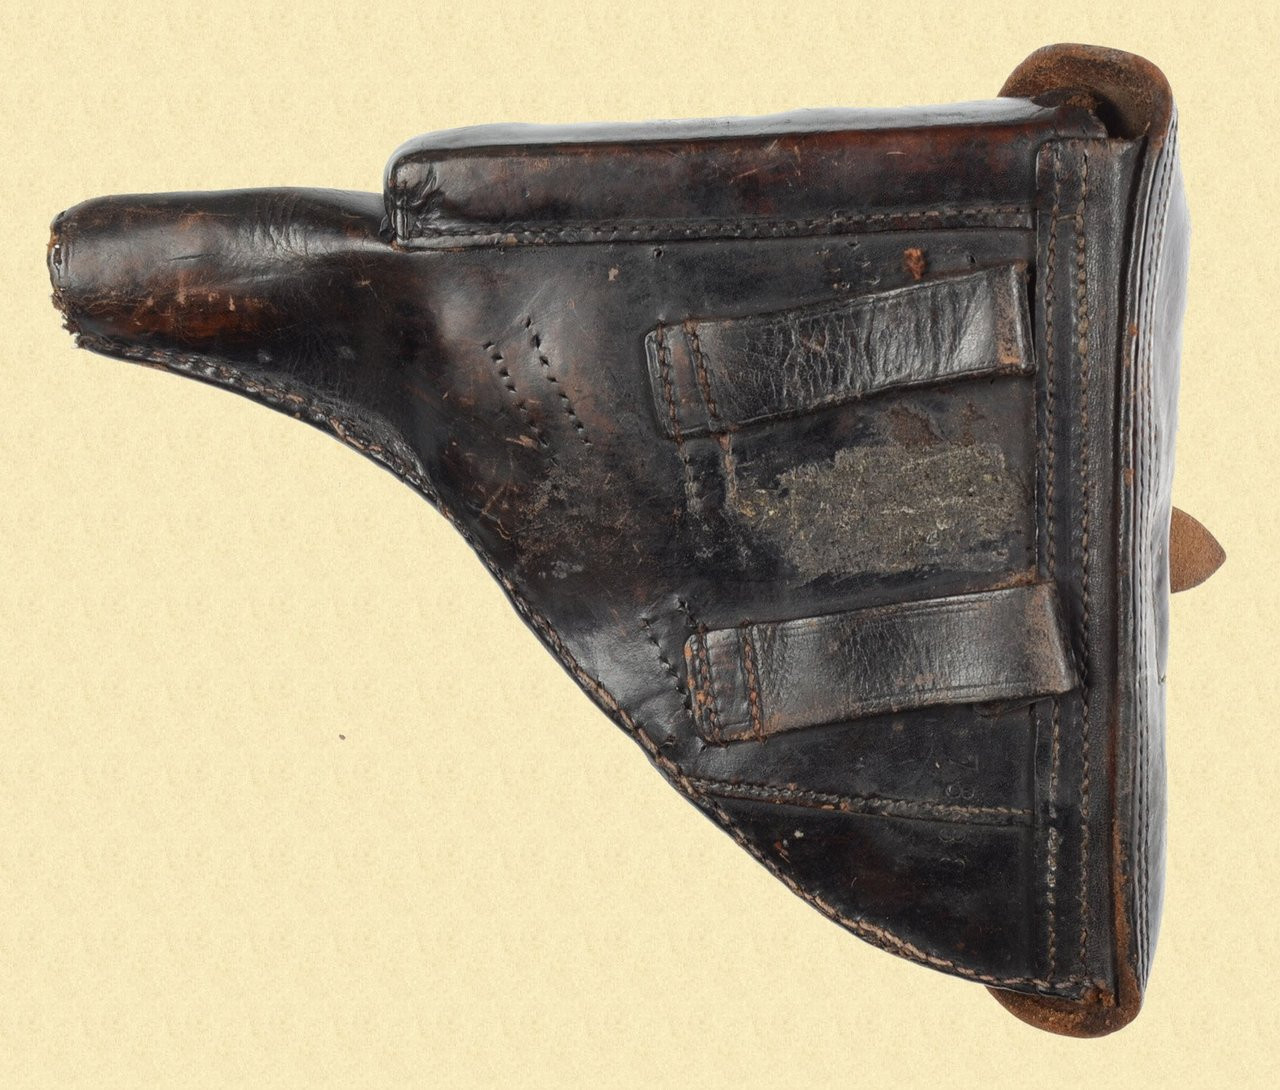 LUGER P.08 POLICE HOLSTER CONVERSION - D15524